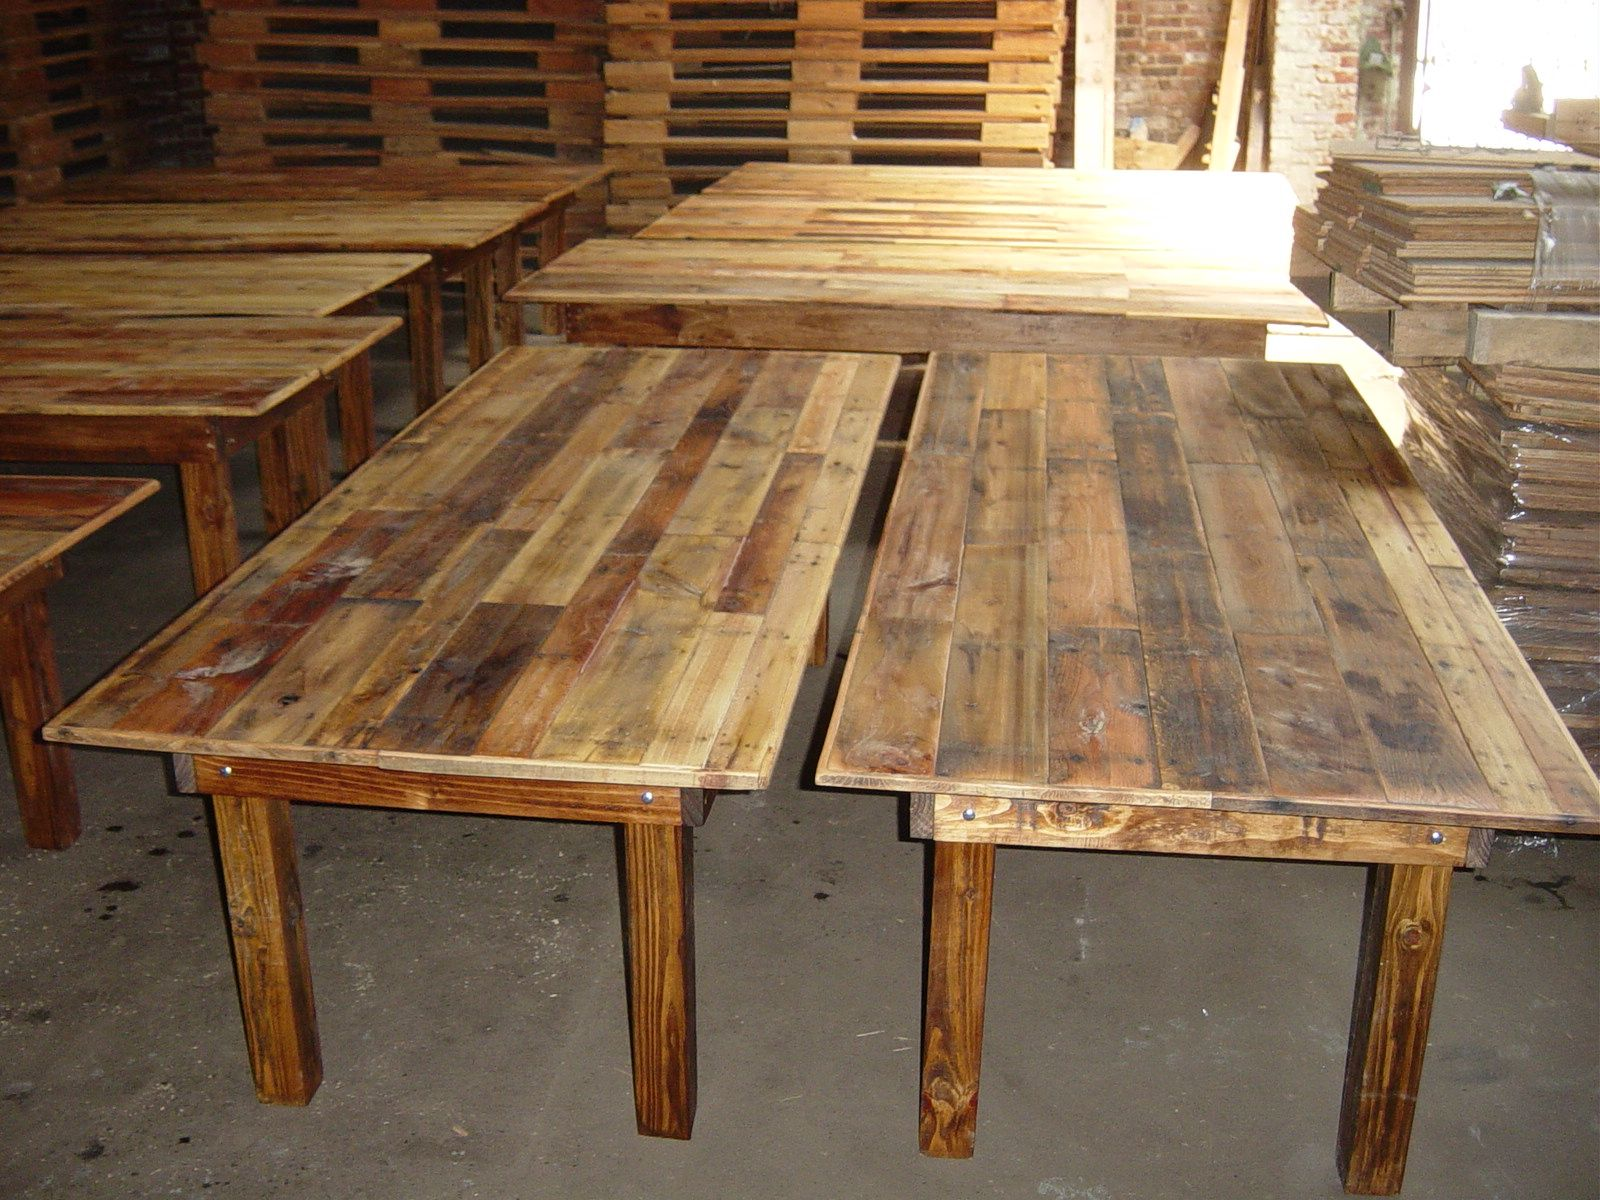 Outdoor Rustic Table Rustic Wooden Picnic Tables Wood Benches